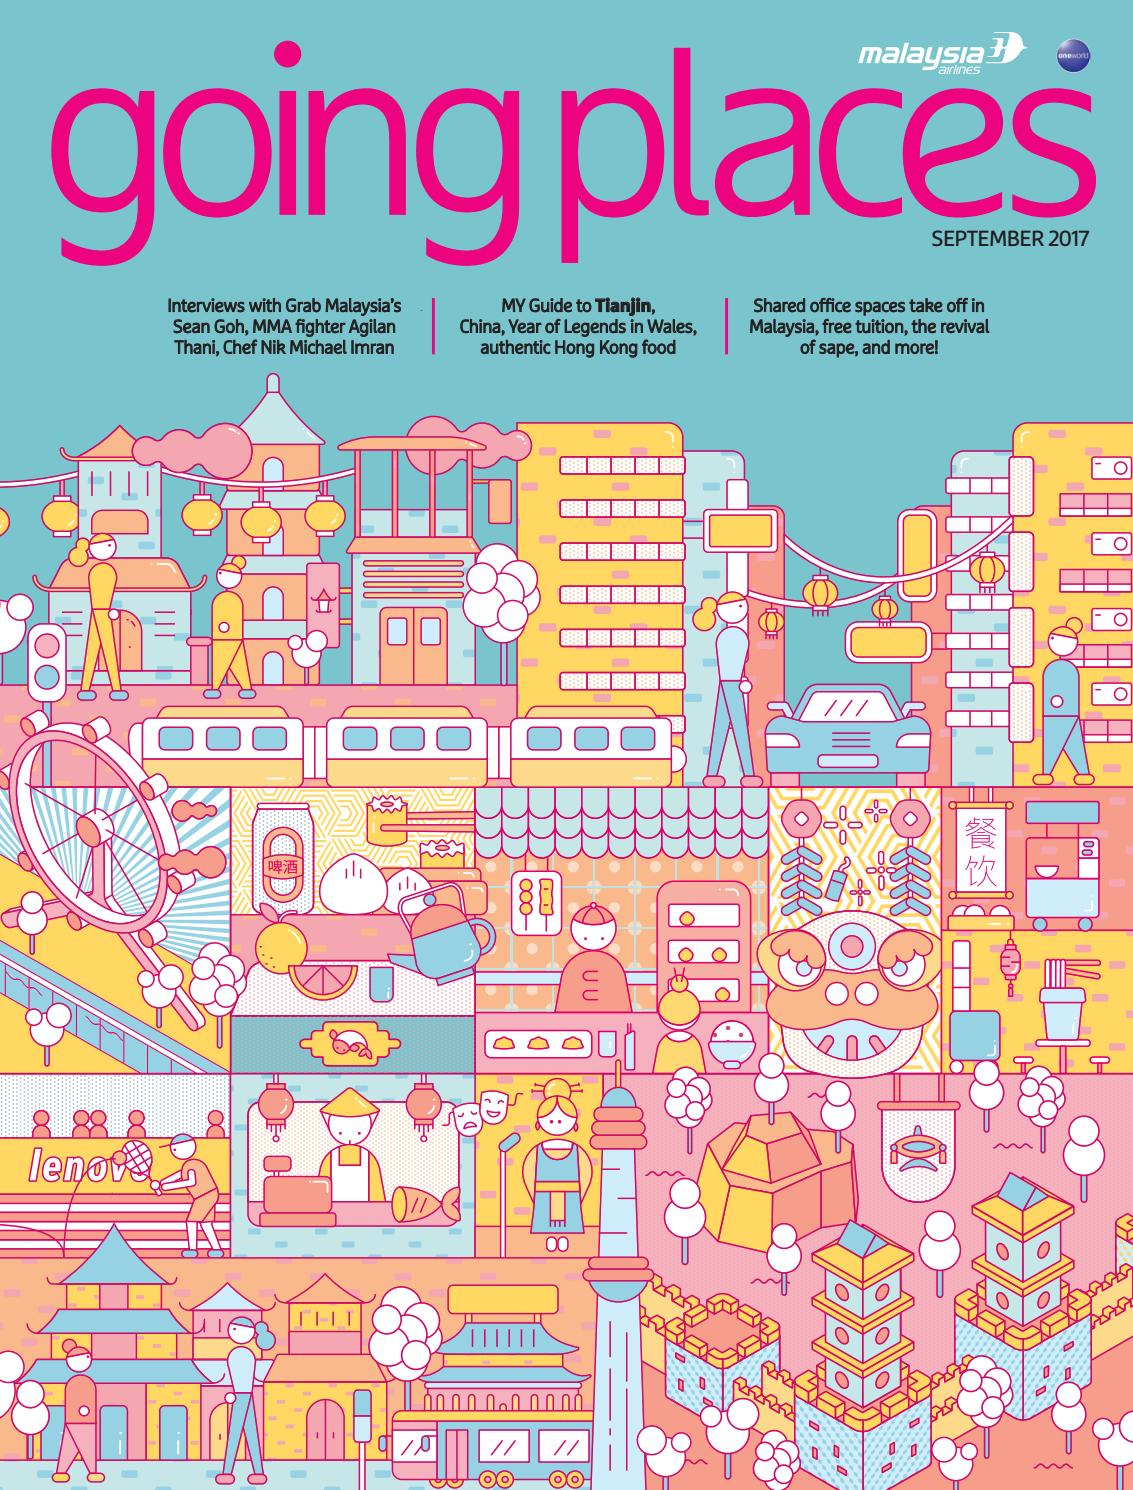 Going Places September 2017 by Spafax Malaysia - issuu